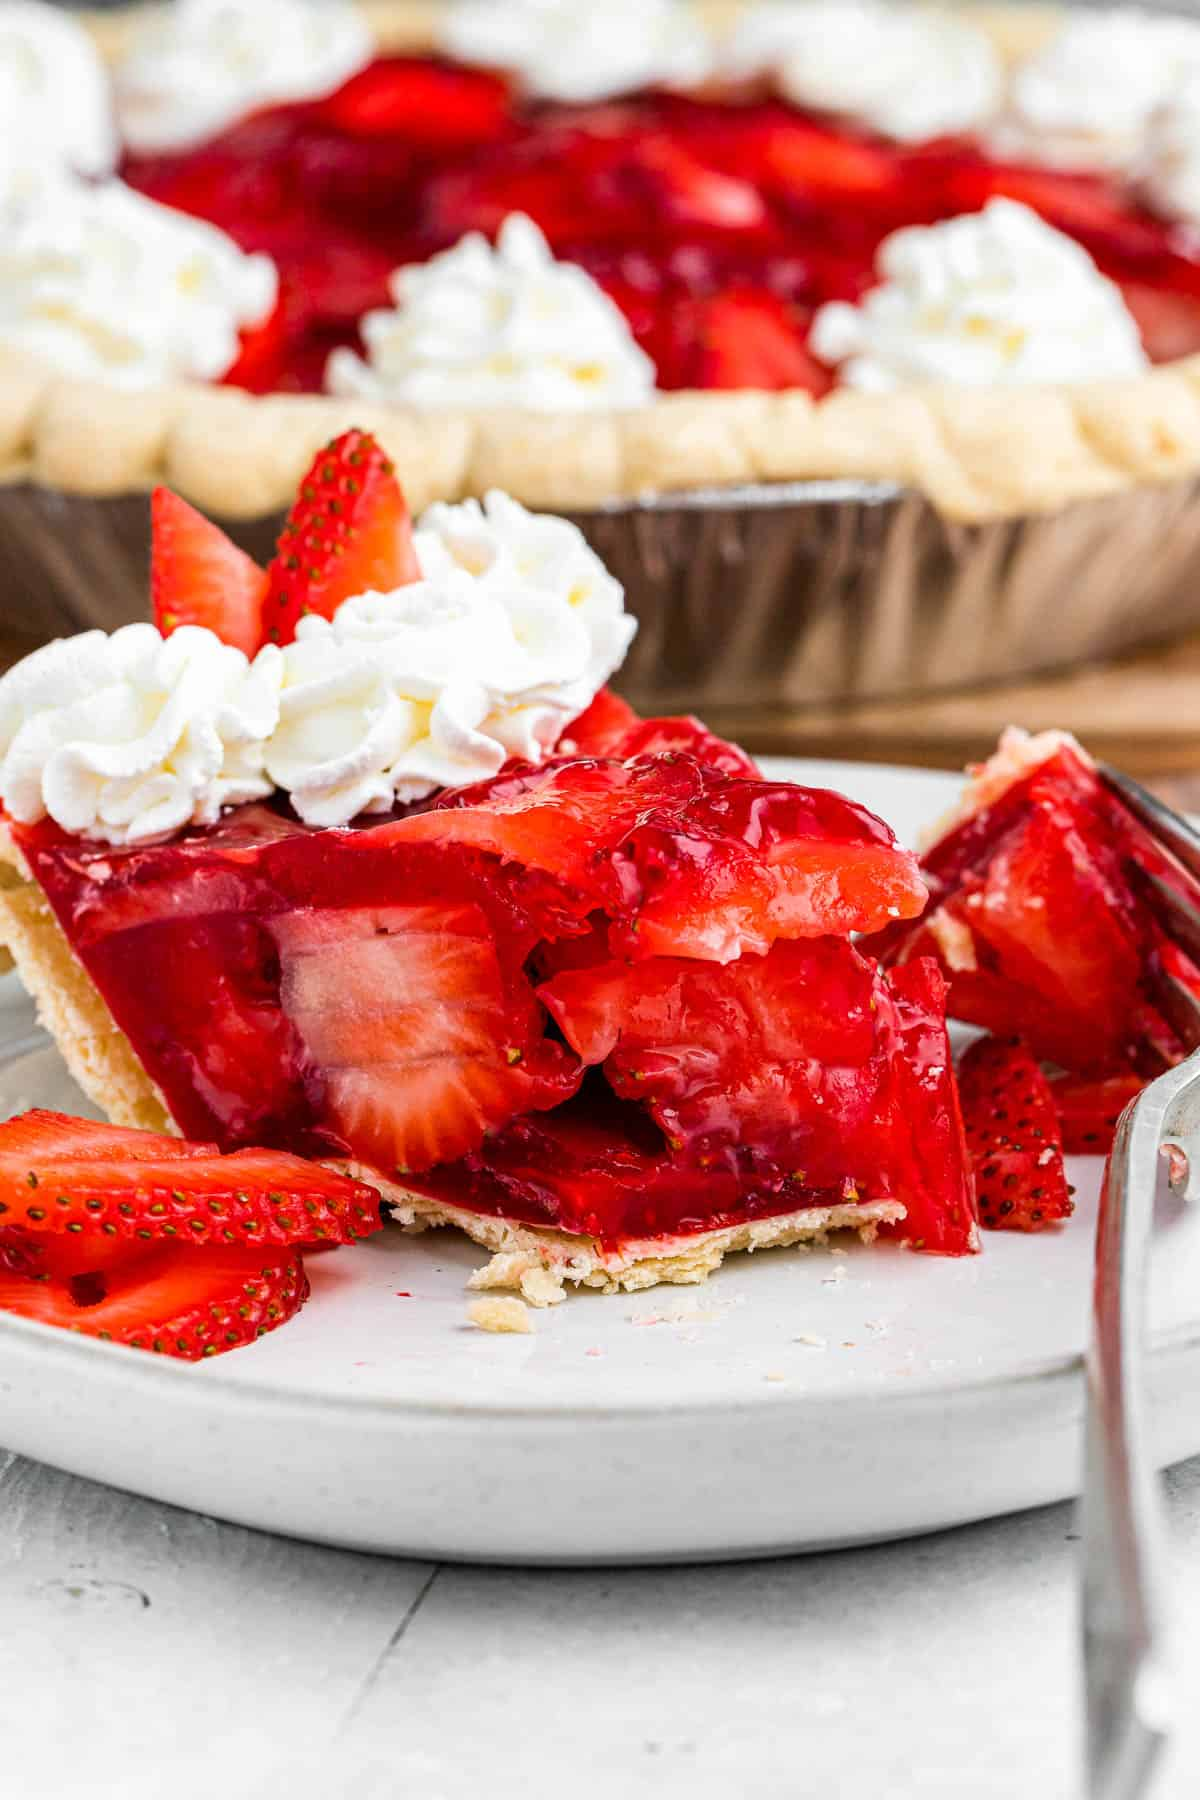 a slice of strawberry pie set on a plate with a fork